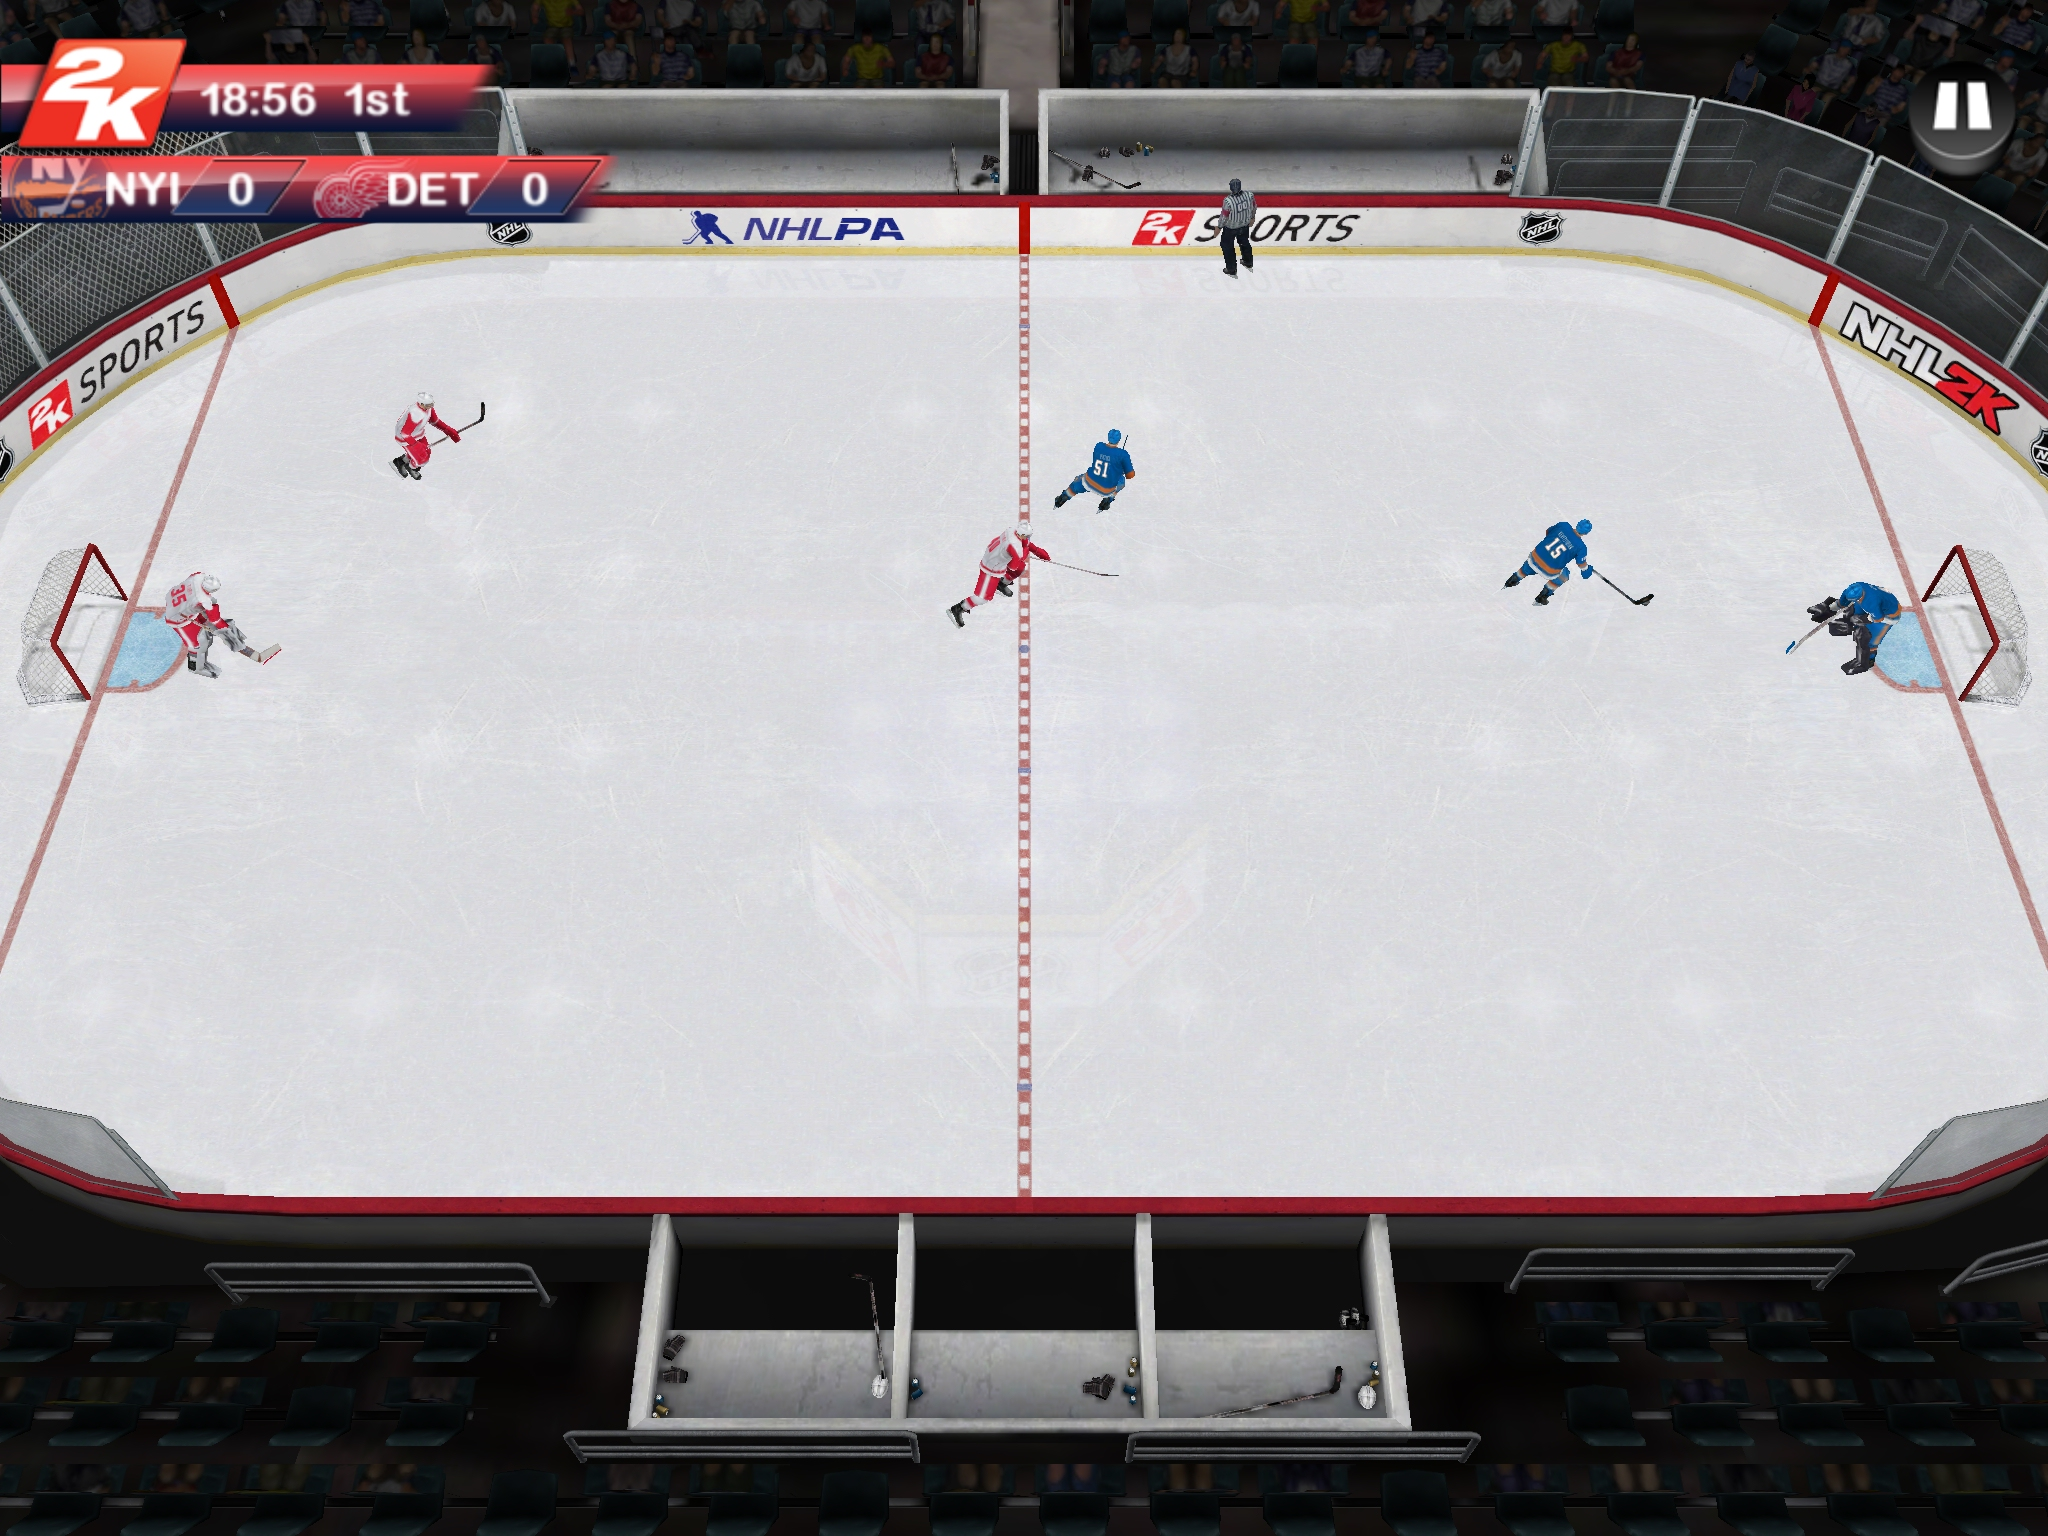 NHL 2K returns to iOS and Android shortly with new Career mode, multiplayer matches, and more